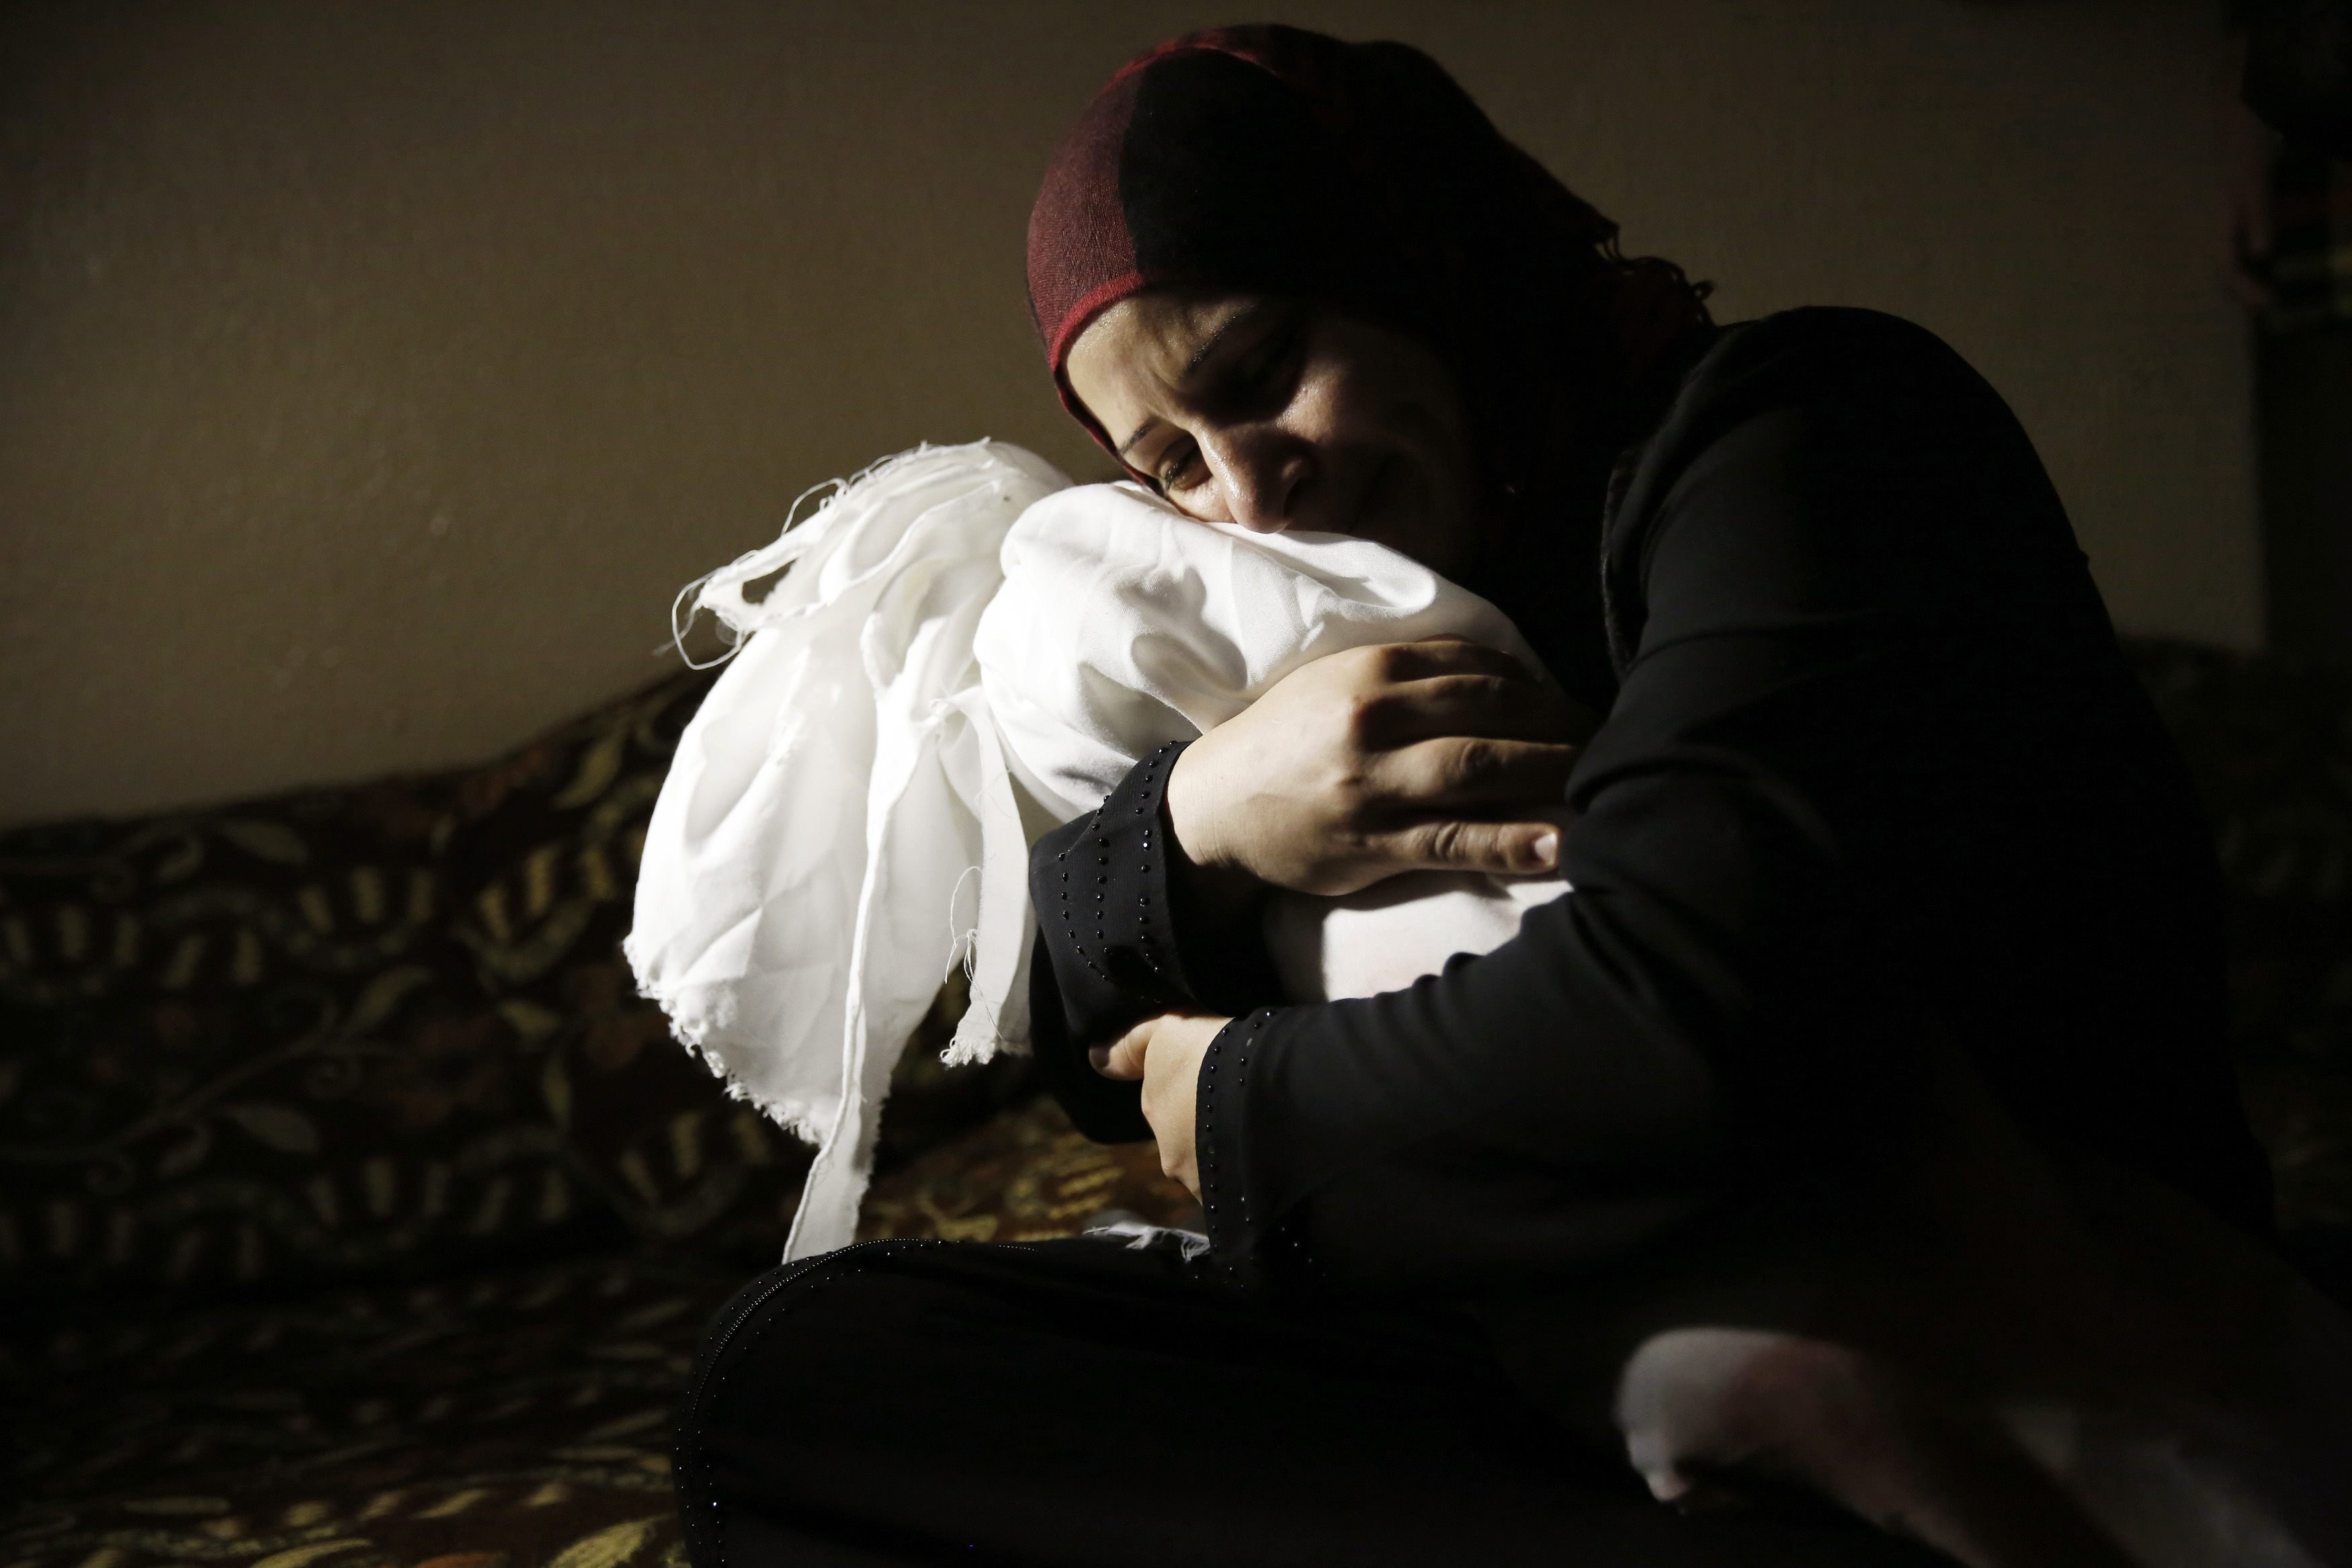 Netream Netzleam holds the body of her daughter Razel, 1, who died in an Israeli air strike on Thursday afternoon, at her funeral in Rafah in the southern Gaza Strip on July 18, 2014.